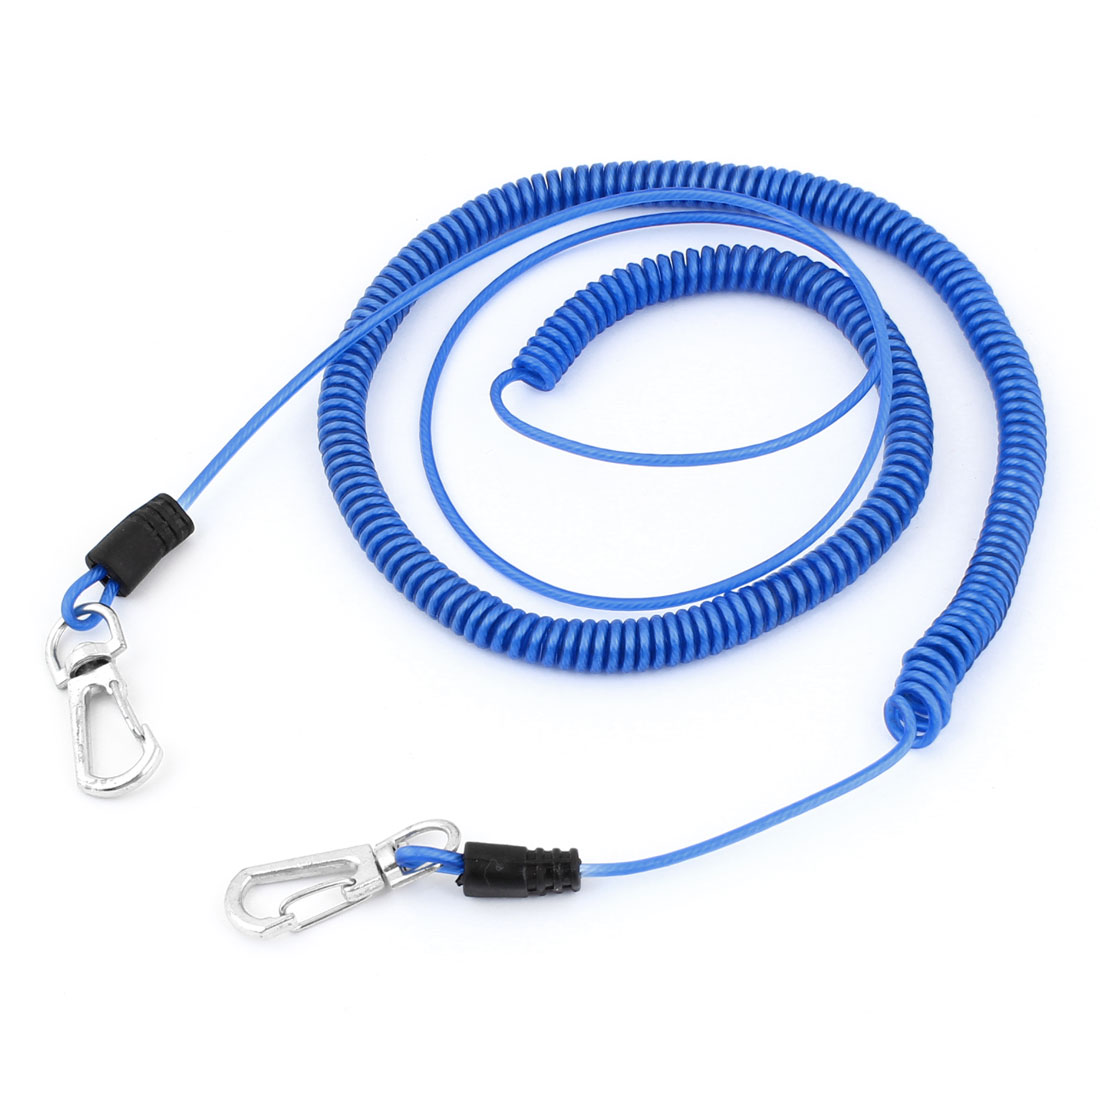 Angling Fishing Rod Net Release Blue Plastic Coiled Lanyard Rope 6M Length